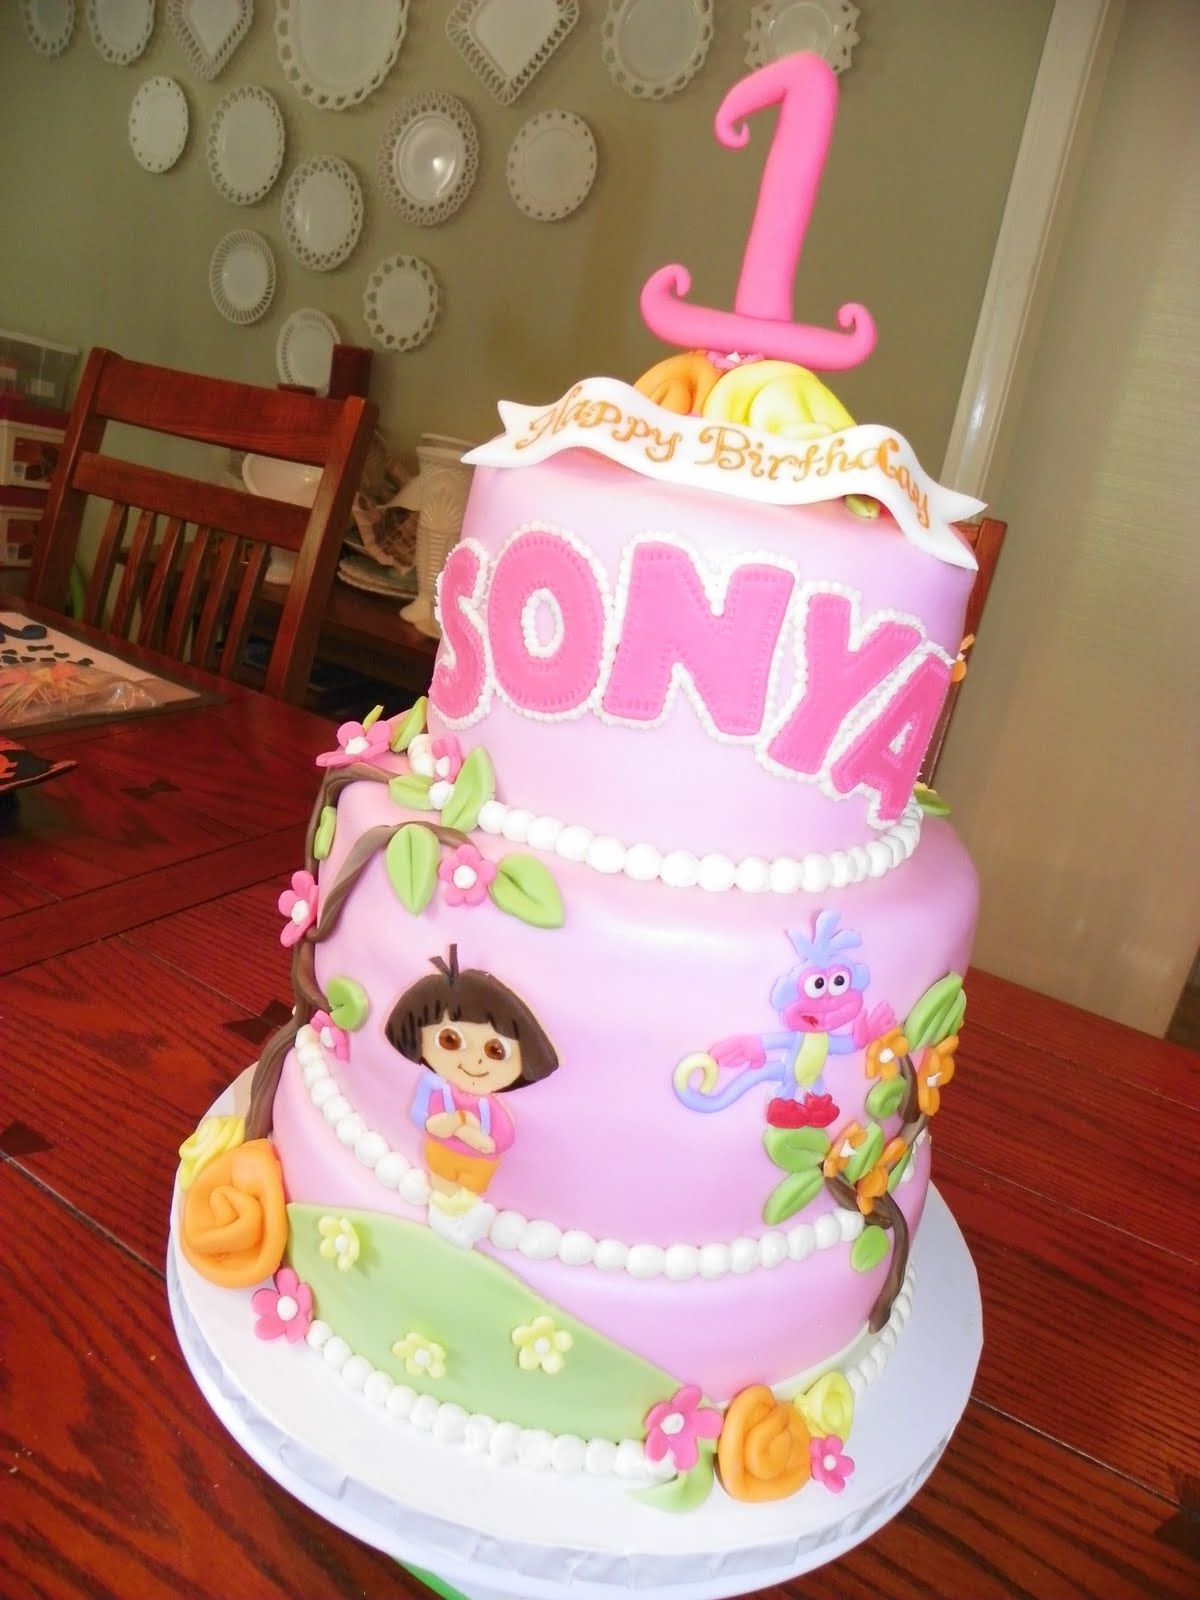 Cake Designs Dora The Explorer : Plumeria Cake Studio: Dora the Explorer Birthday Cake